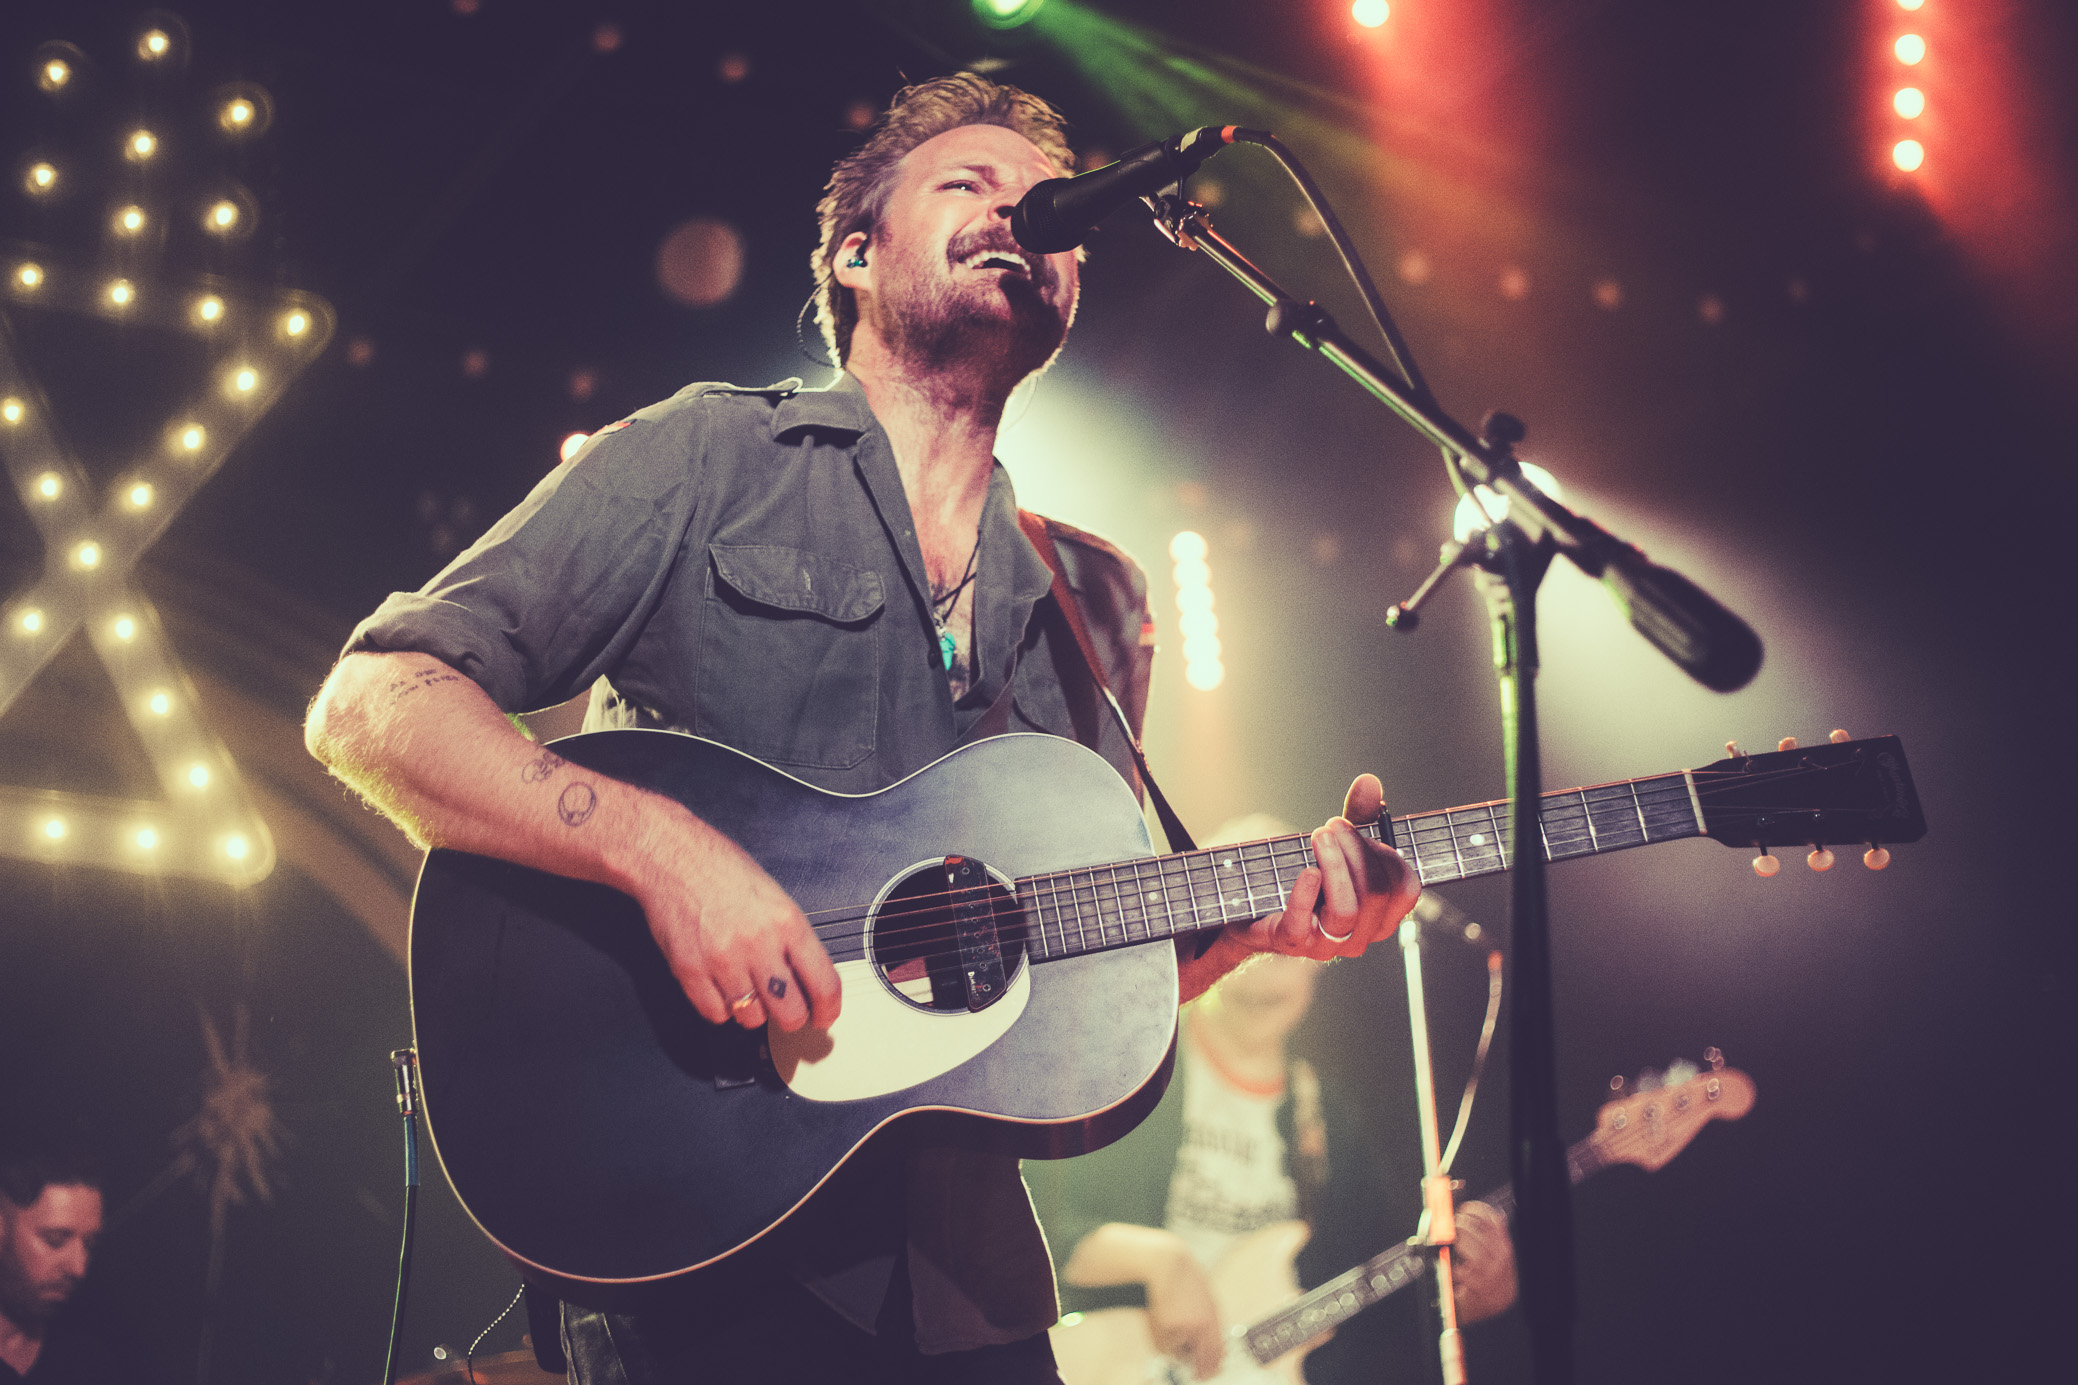 Hiss Golden Messenger performs in concert at Saturn Birmingham in Birmingham, Alabama on September 27th, 2019. (Photo by David A. Smith / DSmithScenes)